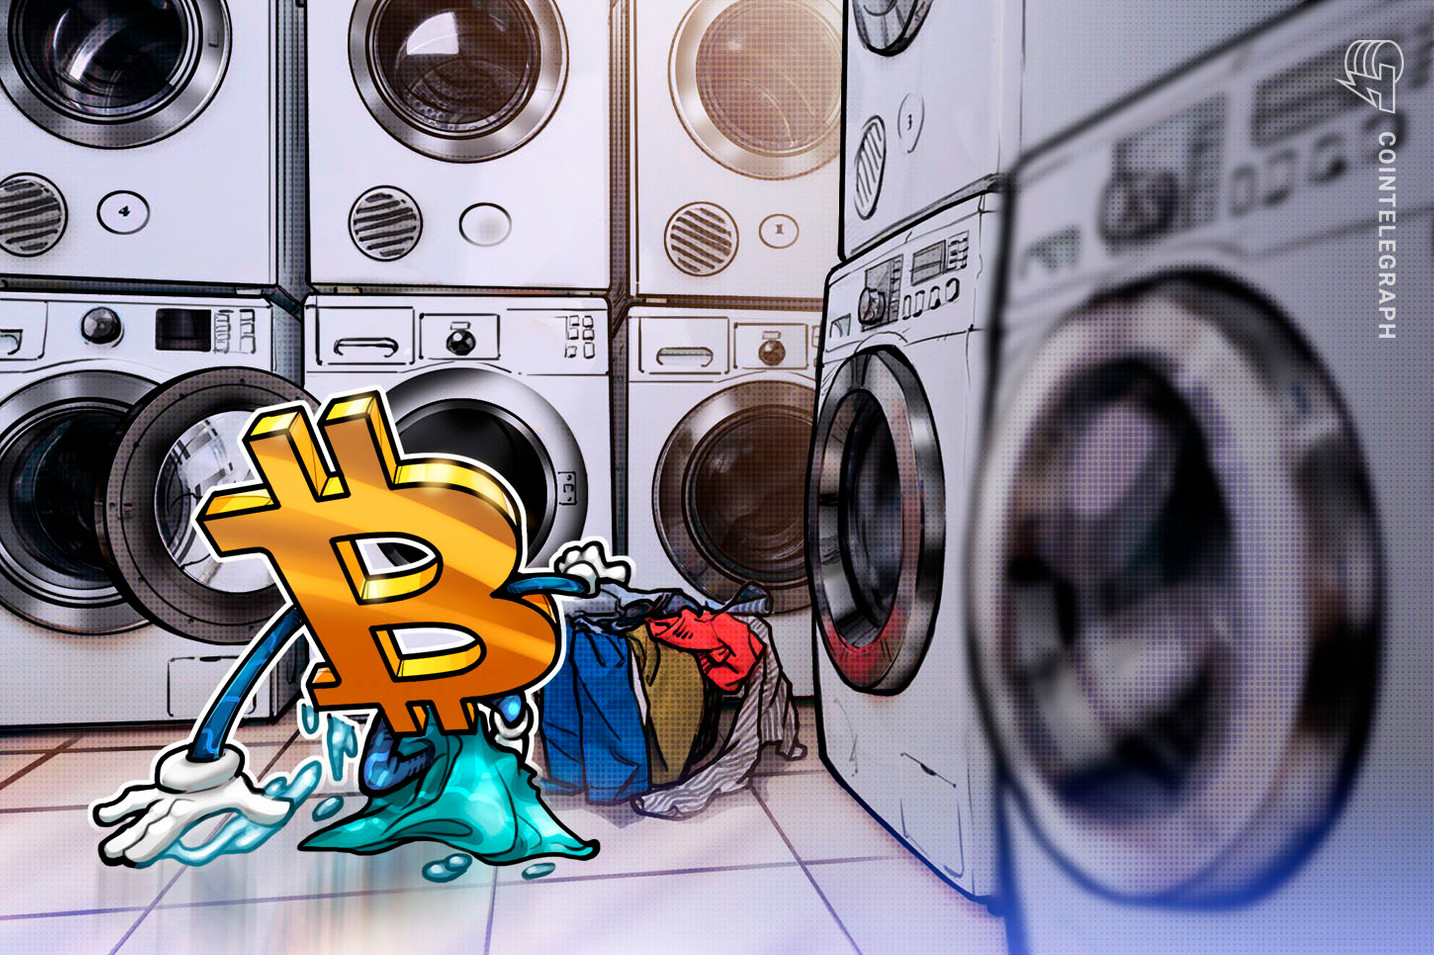 Unlicensed crypto exchange operator faces 25 years for laundering $13M